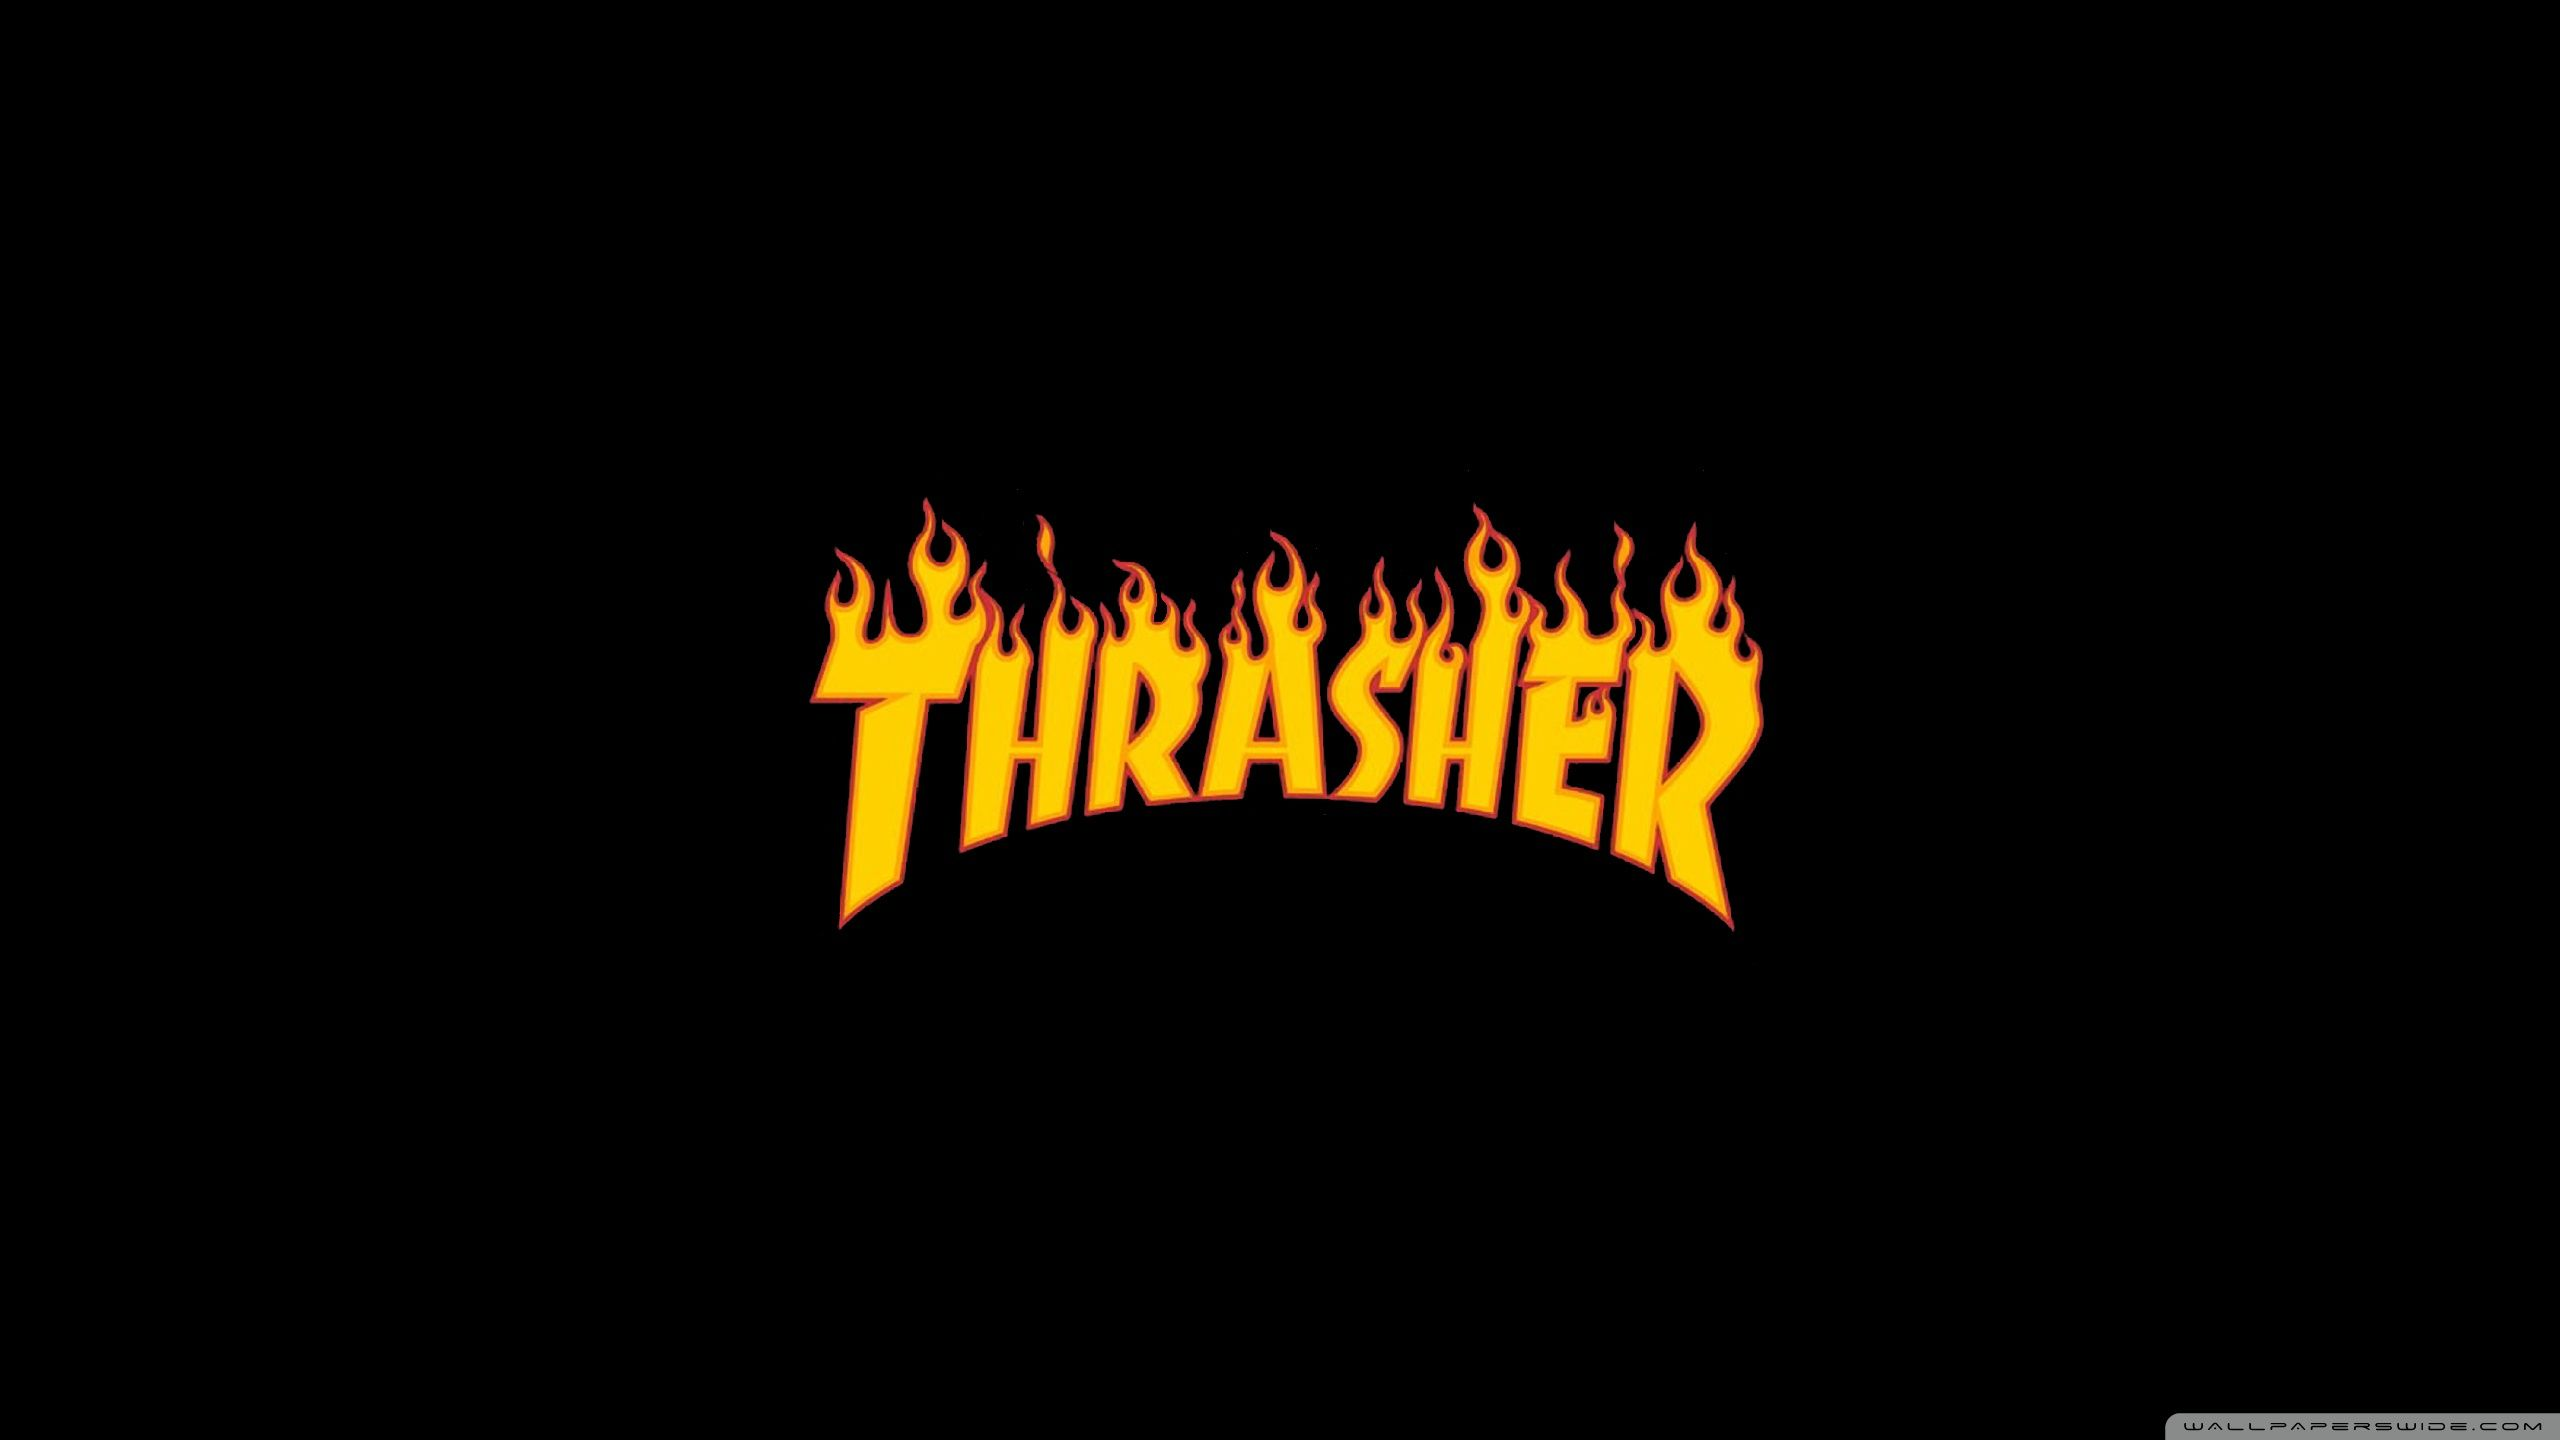 Thrasher Wallpapers Top Free Thrasher Backgrounds